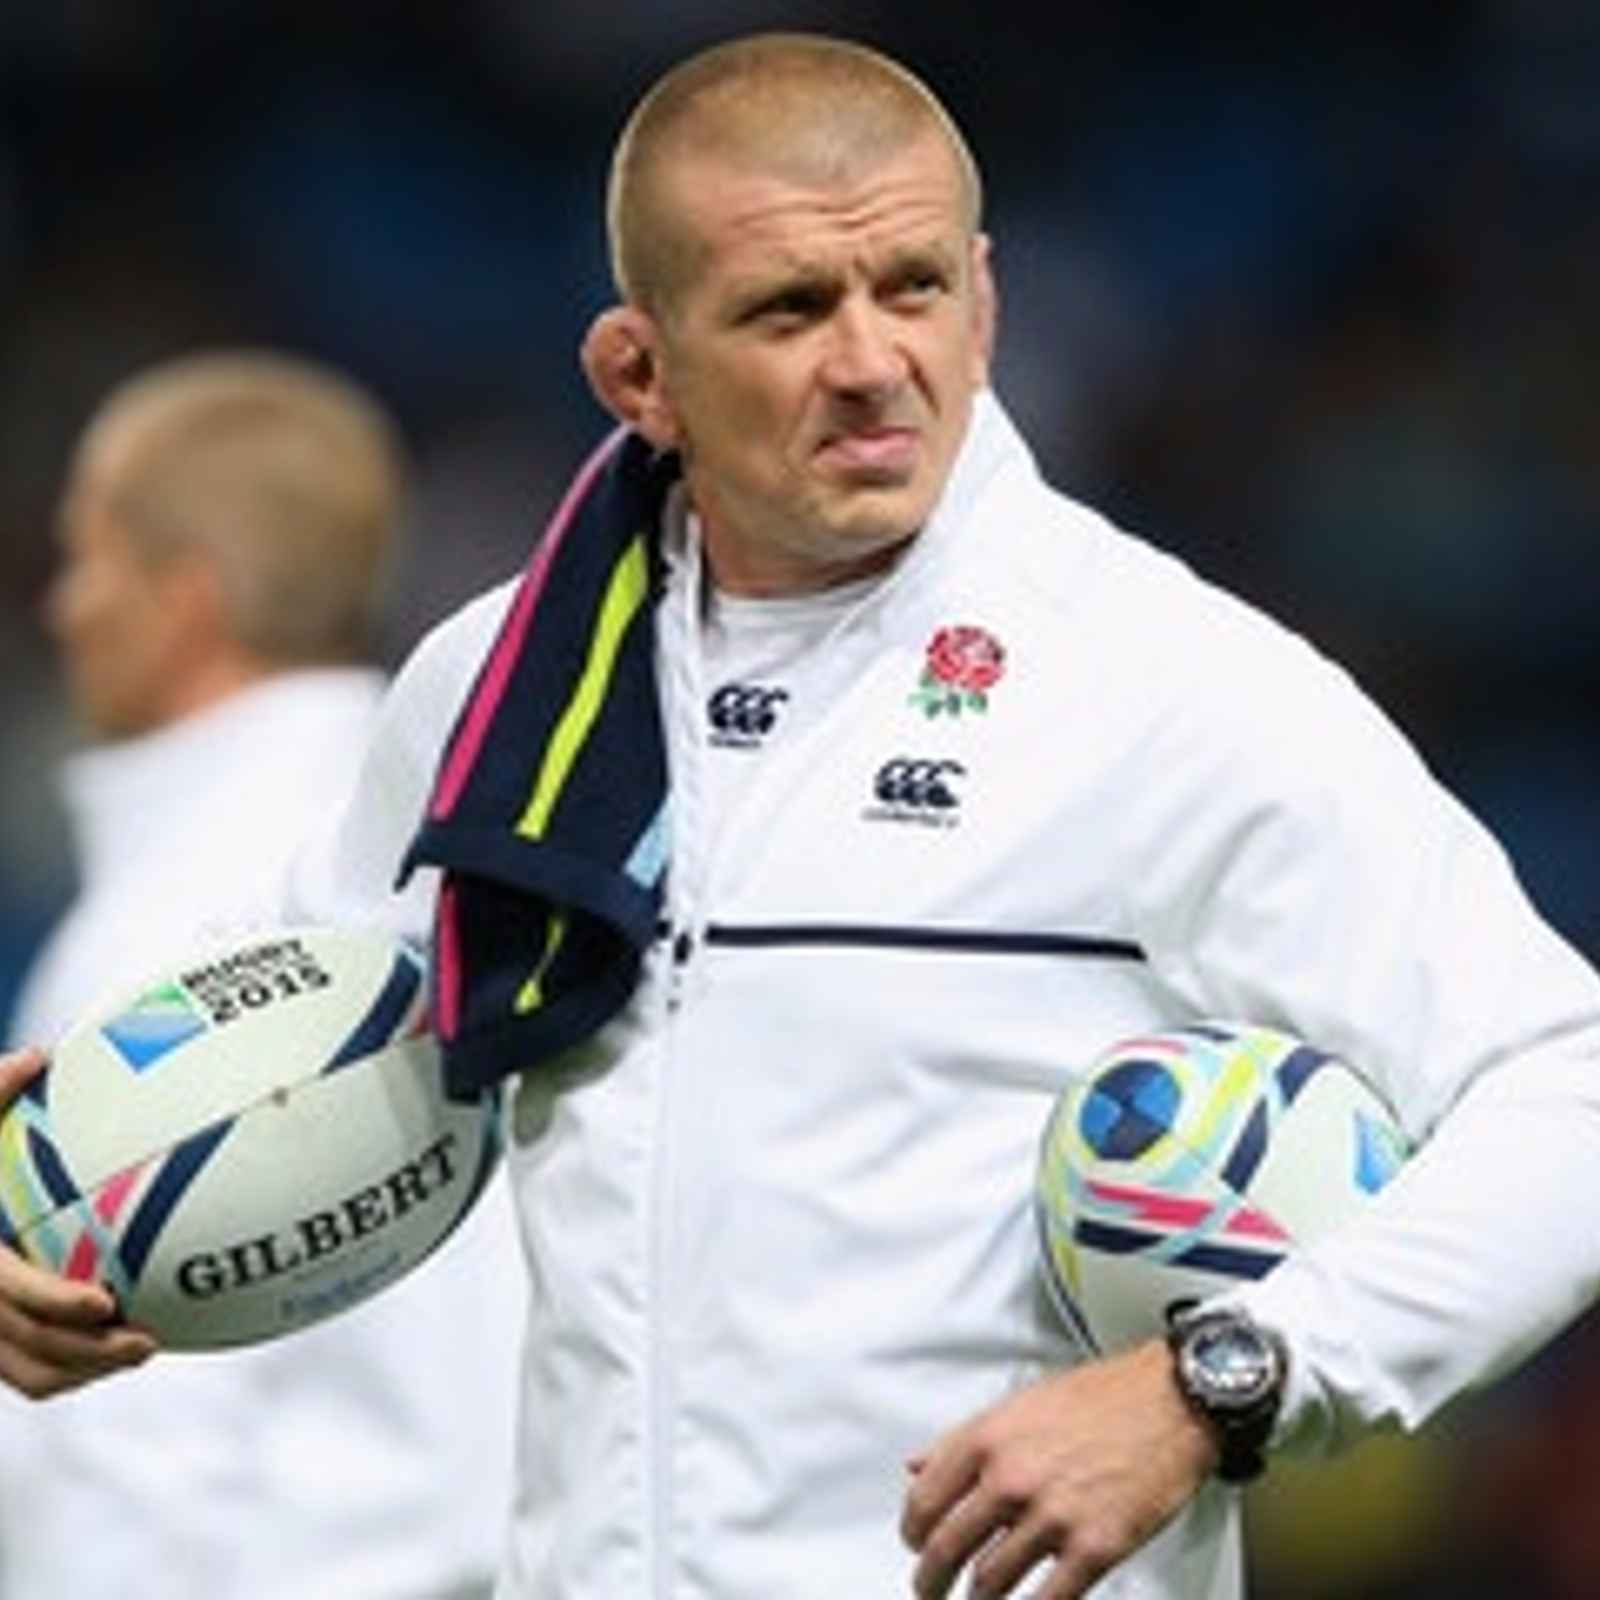 End of Season Dinner 20th May with Graham Rowntree